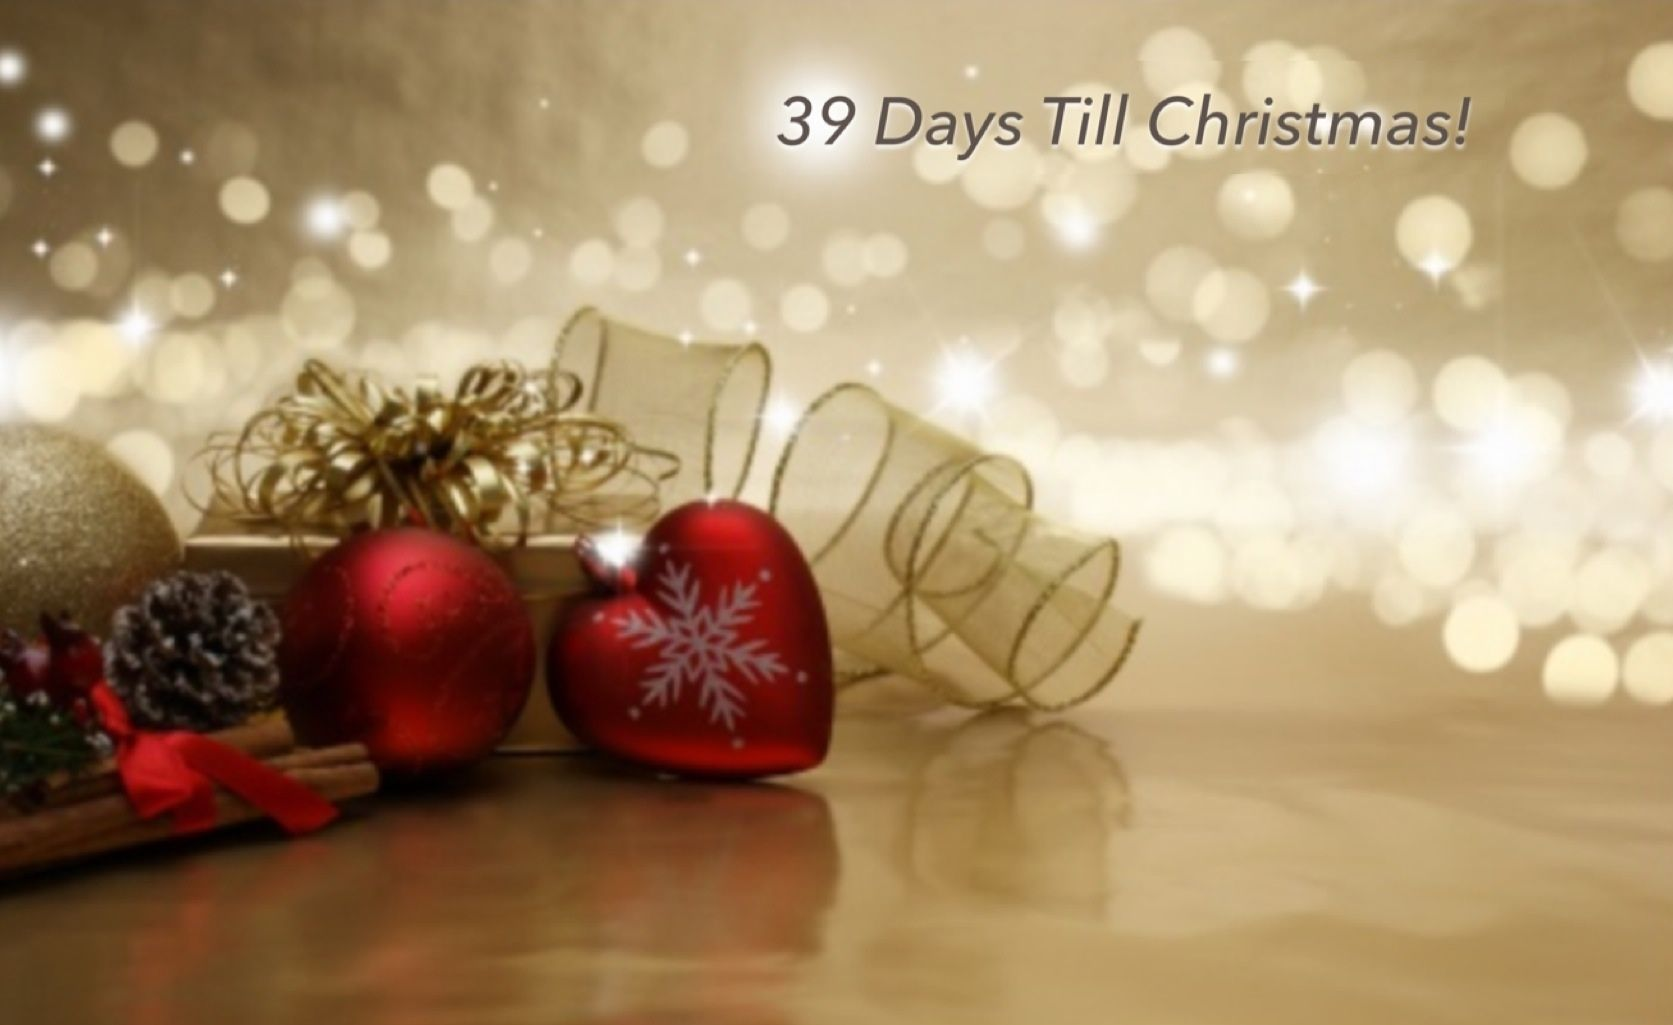 Countdown For Christmas Pictures, Photos, and Images for Facebook ...